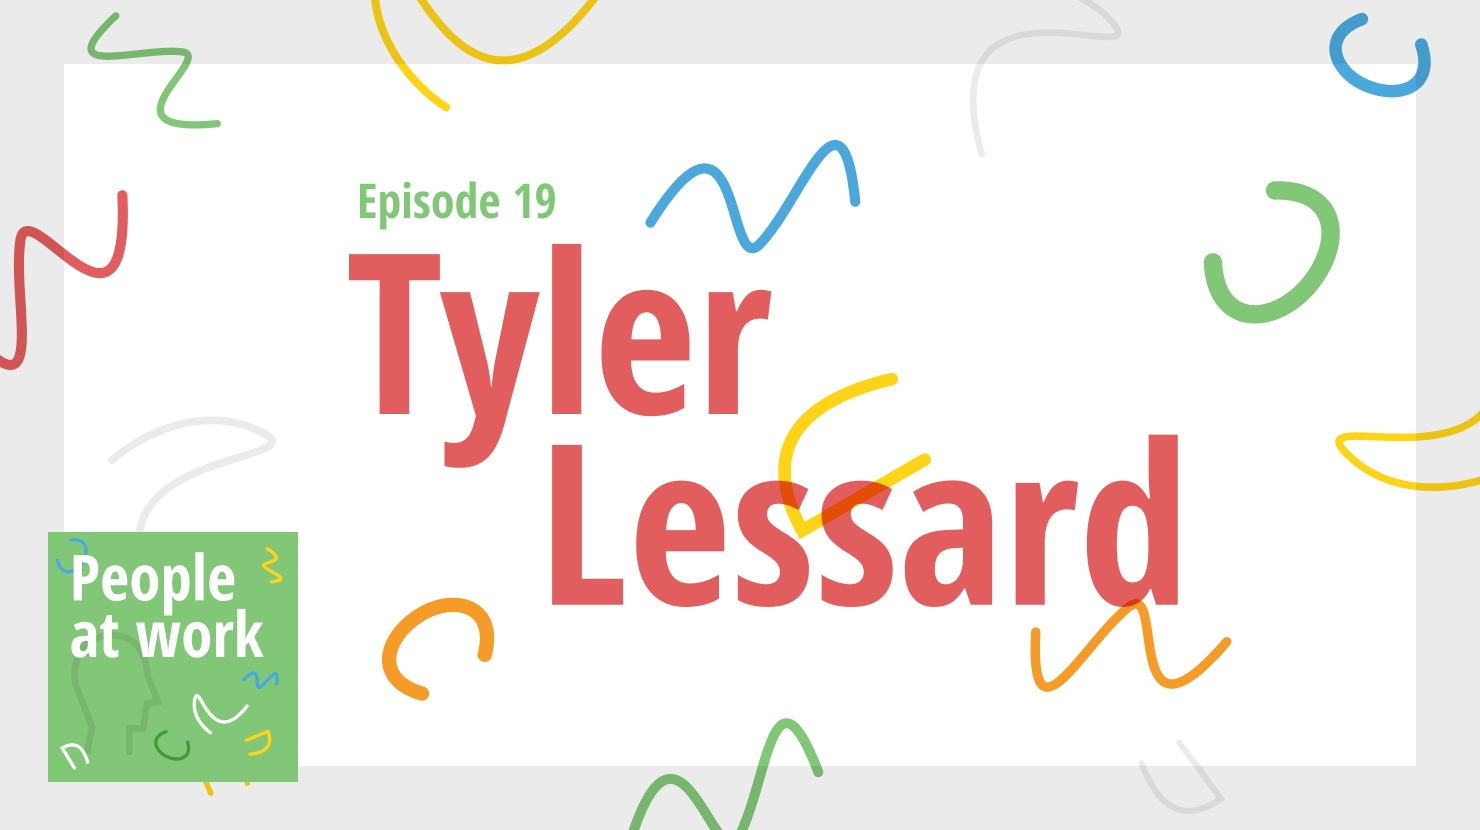 Tyler Lessard on creating a strong business brand through a strong internal culture